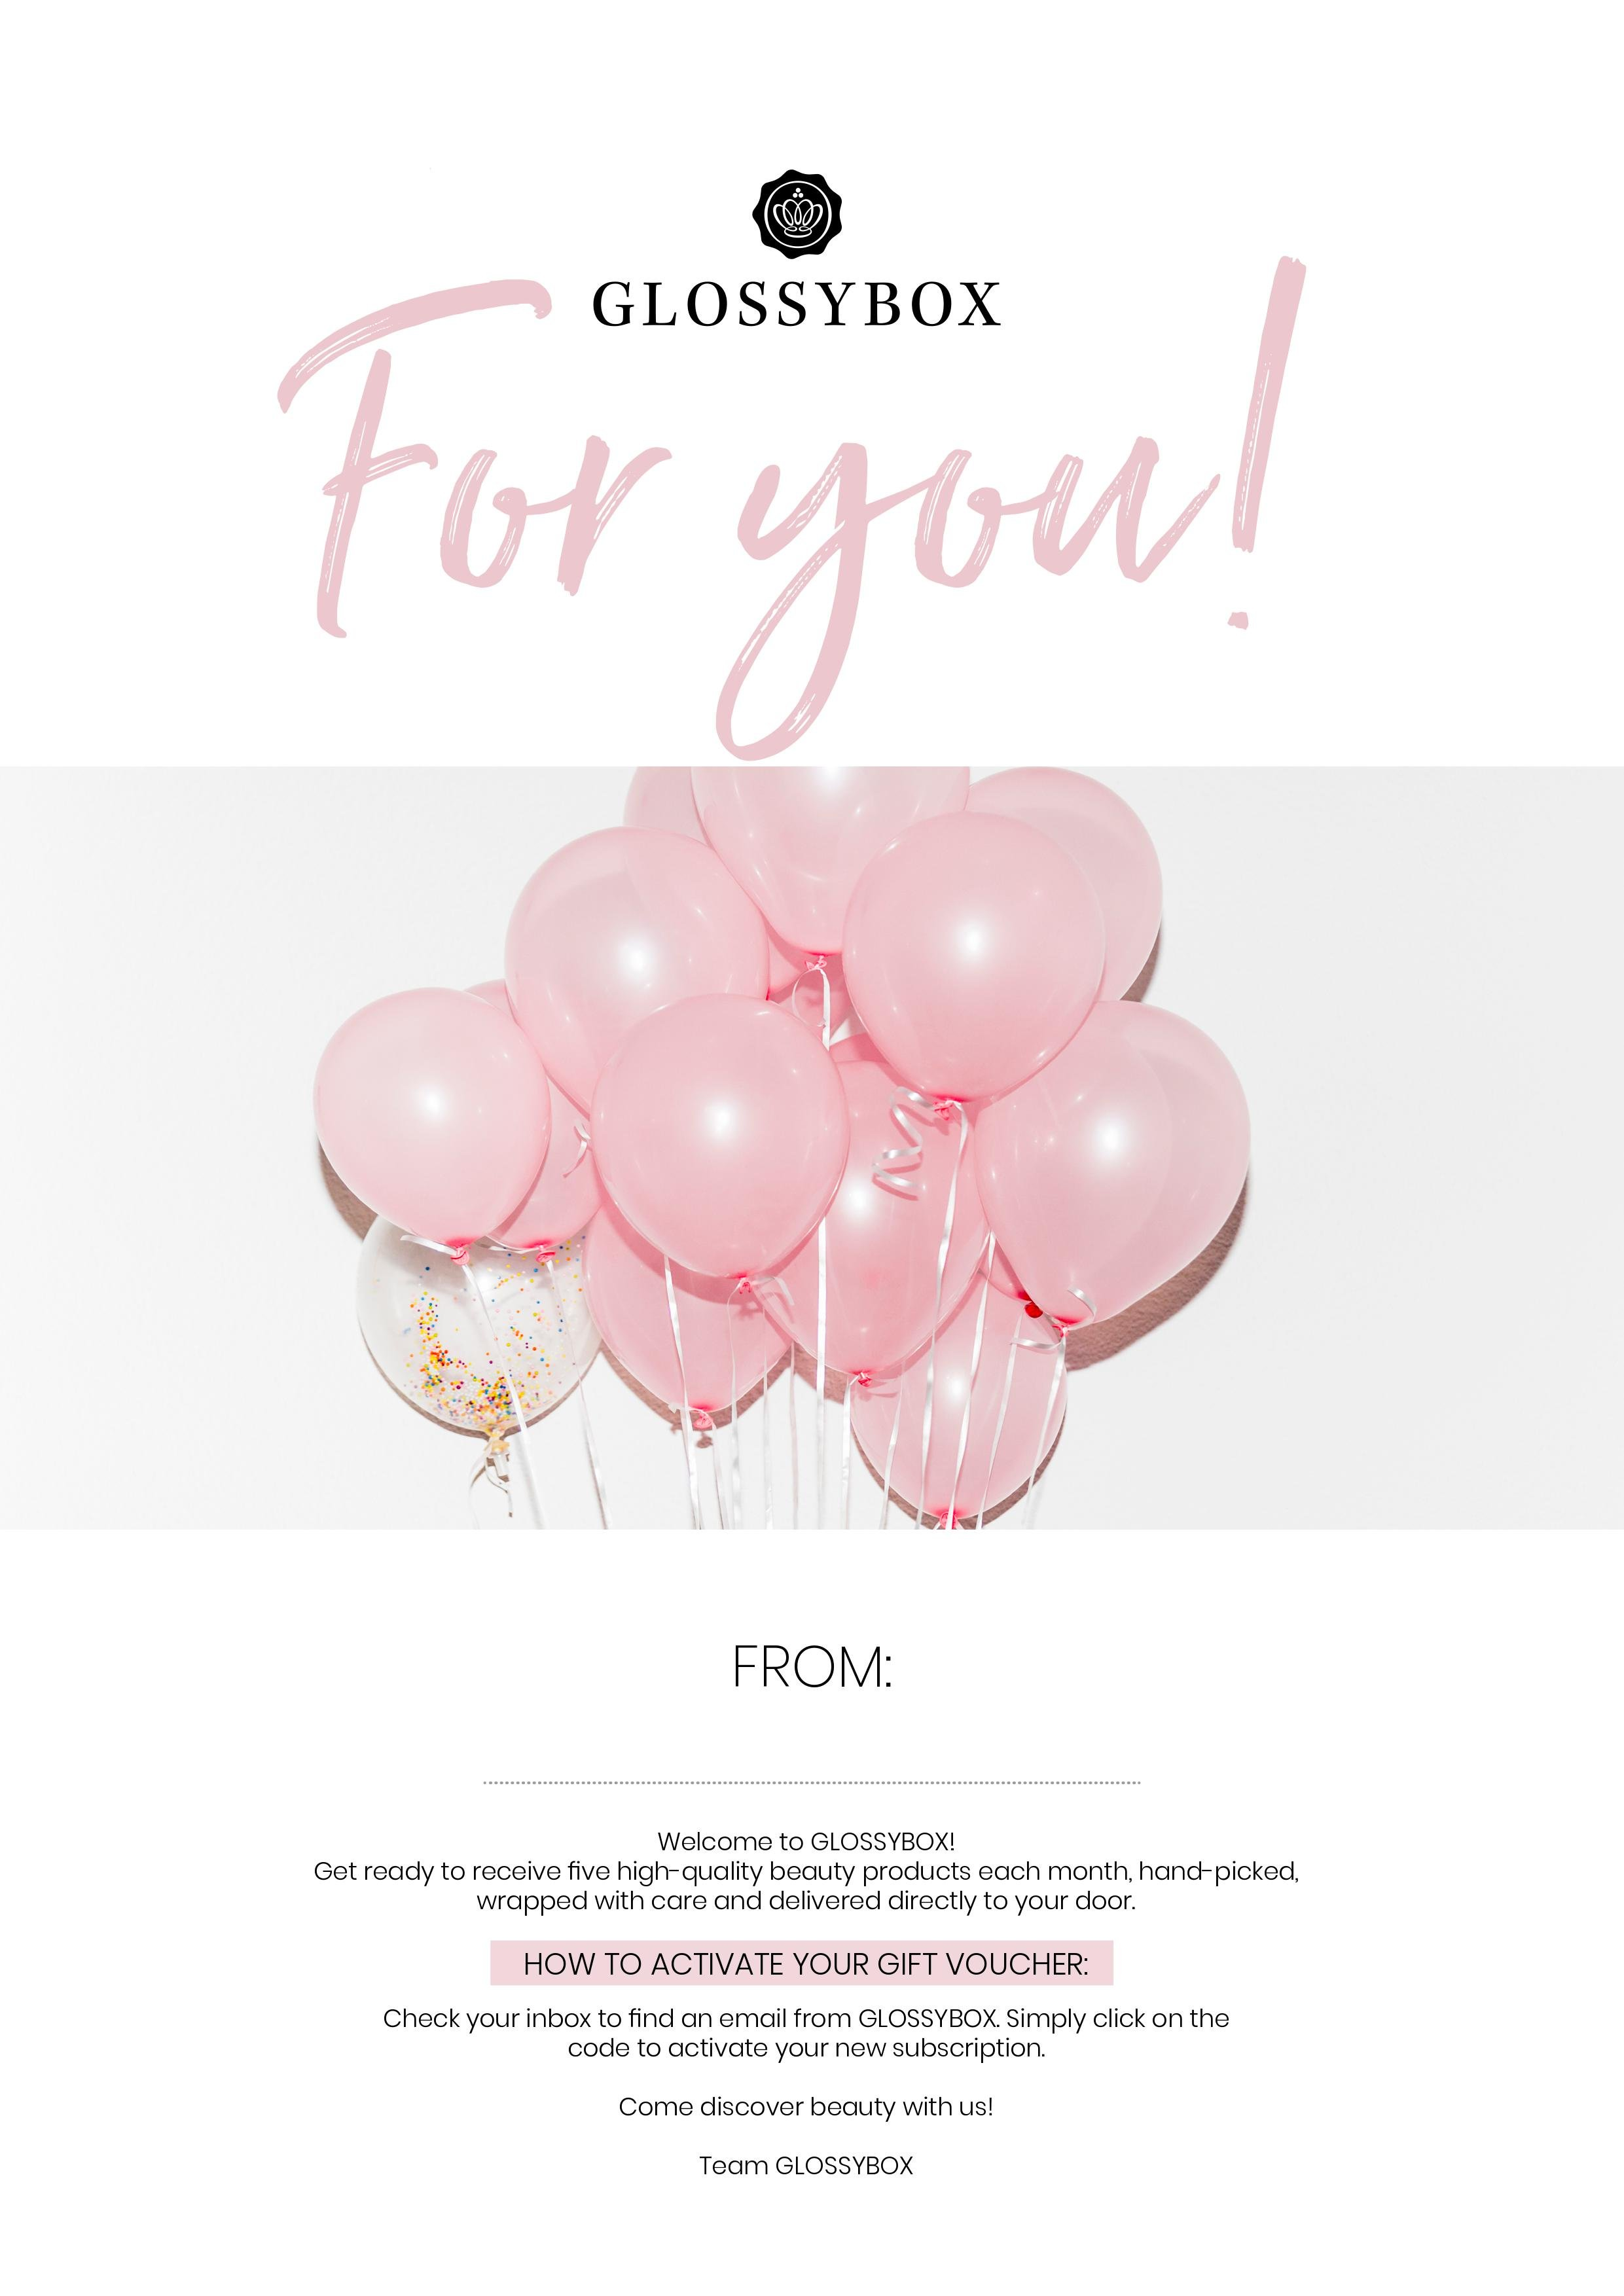 glossybox-egift-voucher-printable-card-celebration